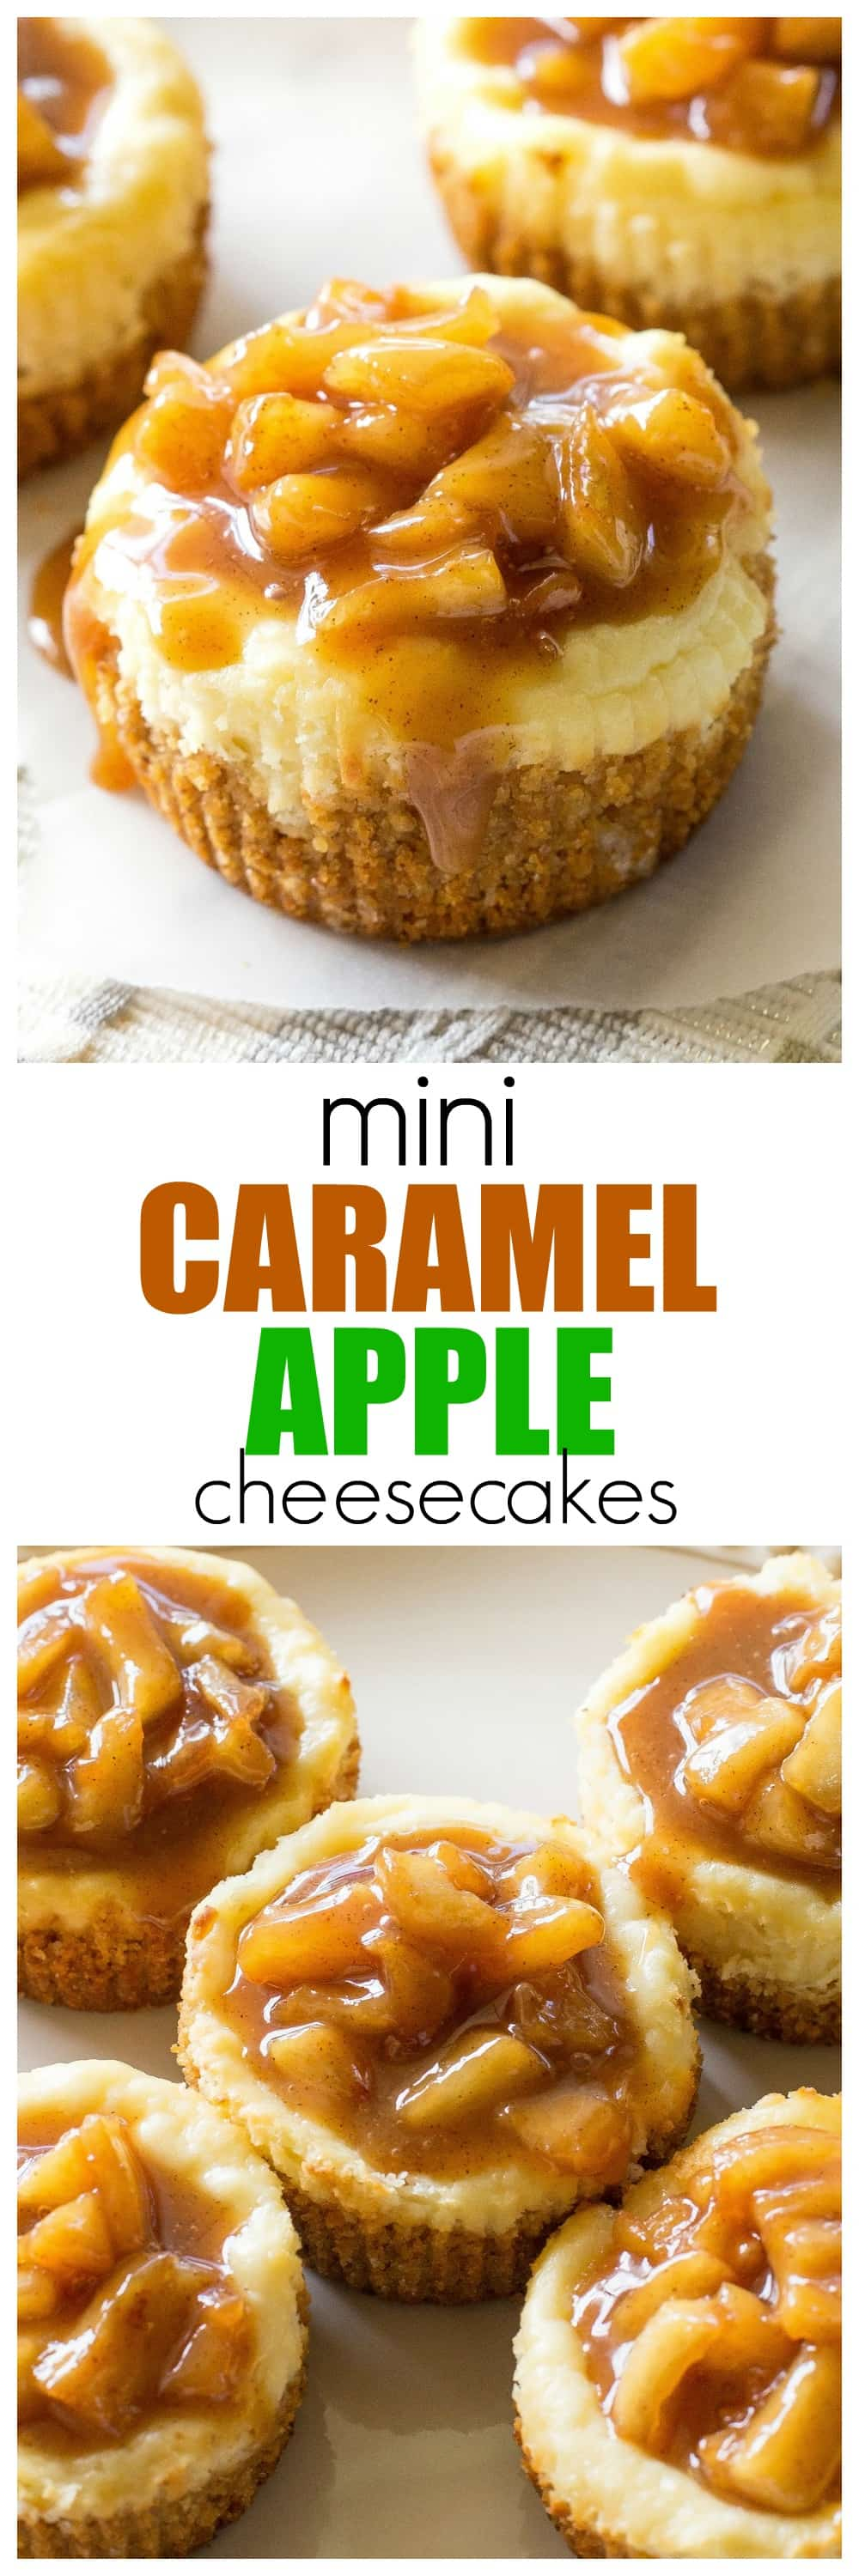 Mini Caramel Apple Cheesecakes - so easy and individually portioned! the-girl-who-ate-everything.com